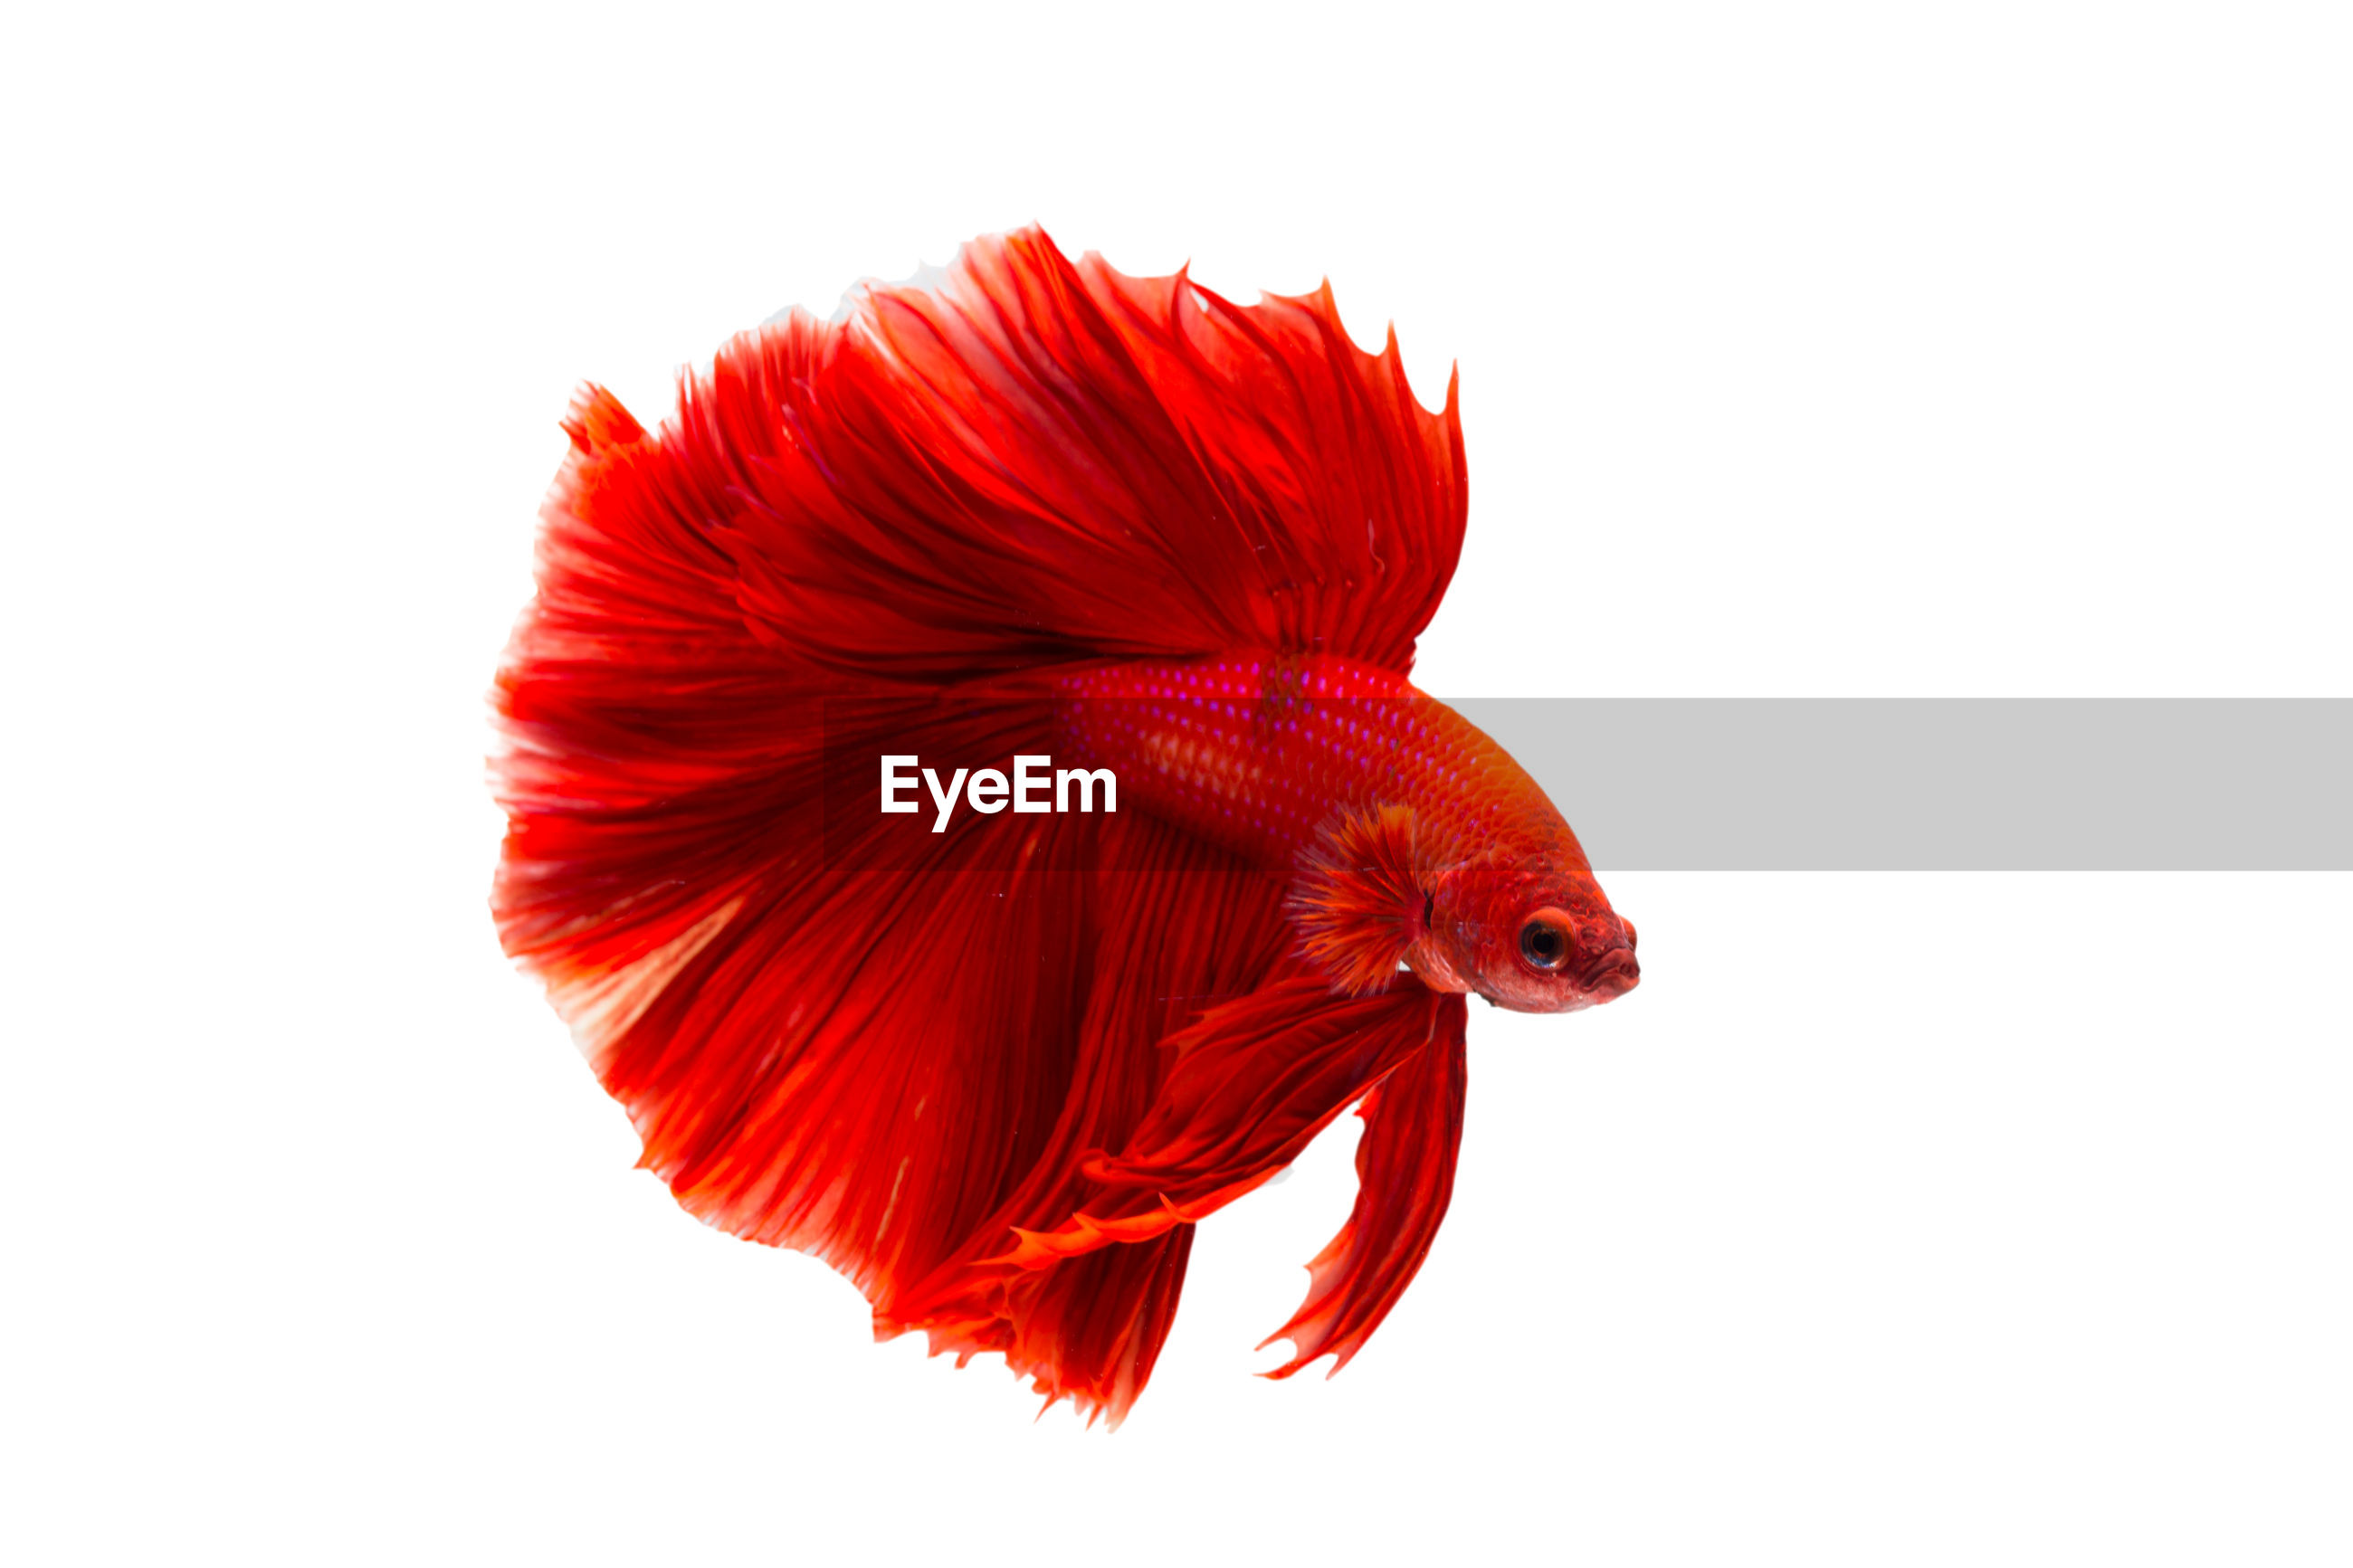 Super red betta fish. siamese fighting fish isolated on white background. thailand.